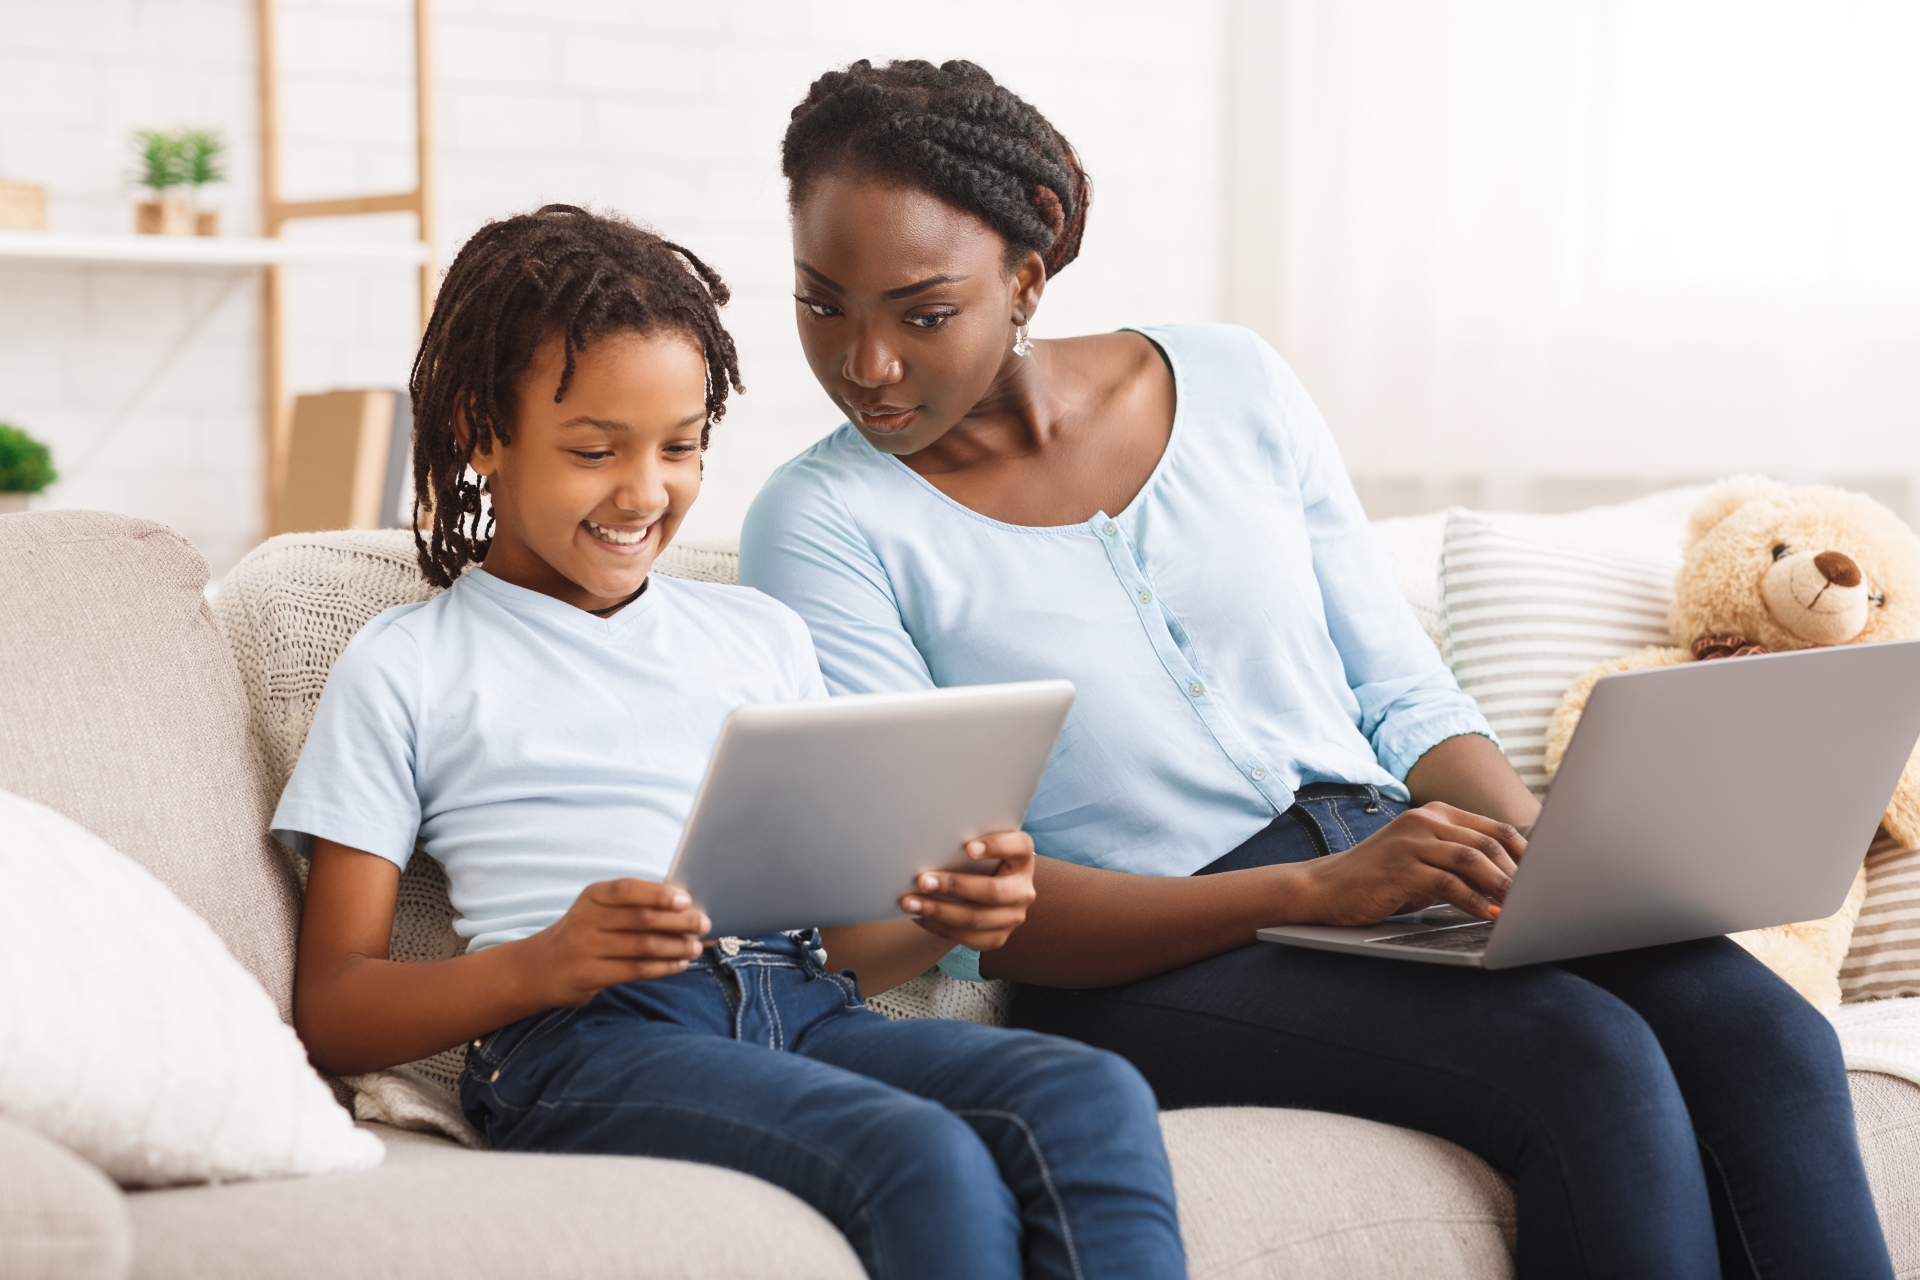 5 Things You Can Do to Ensure Your Children are Safe Online During Quarantine - Free Teens Youth - Changing Minds, Transforming Lives